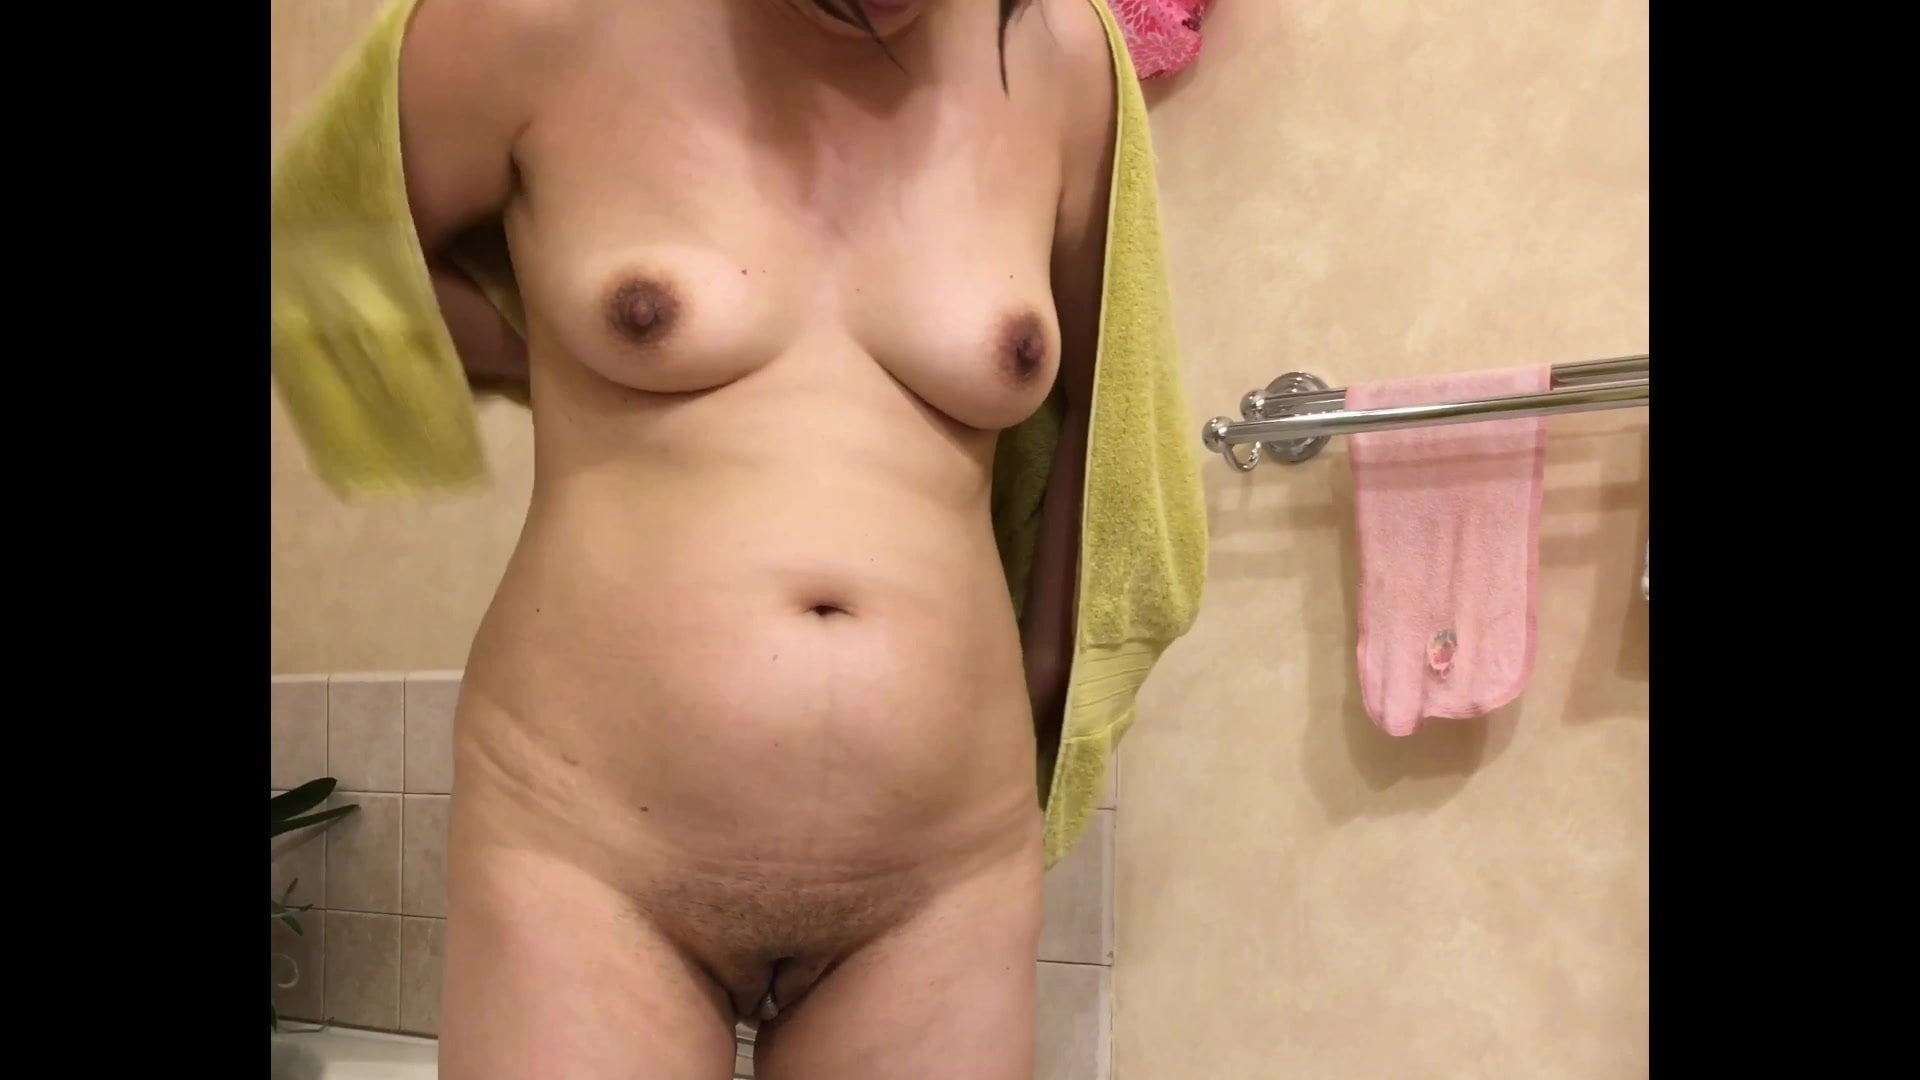 mp4 video Chinese men sex